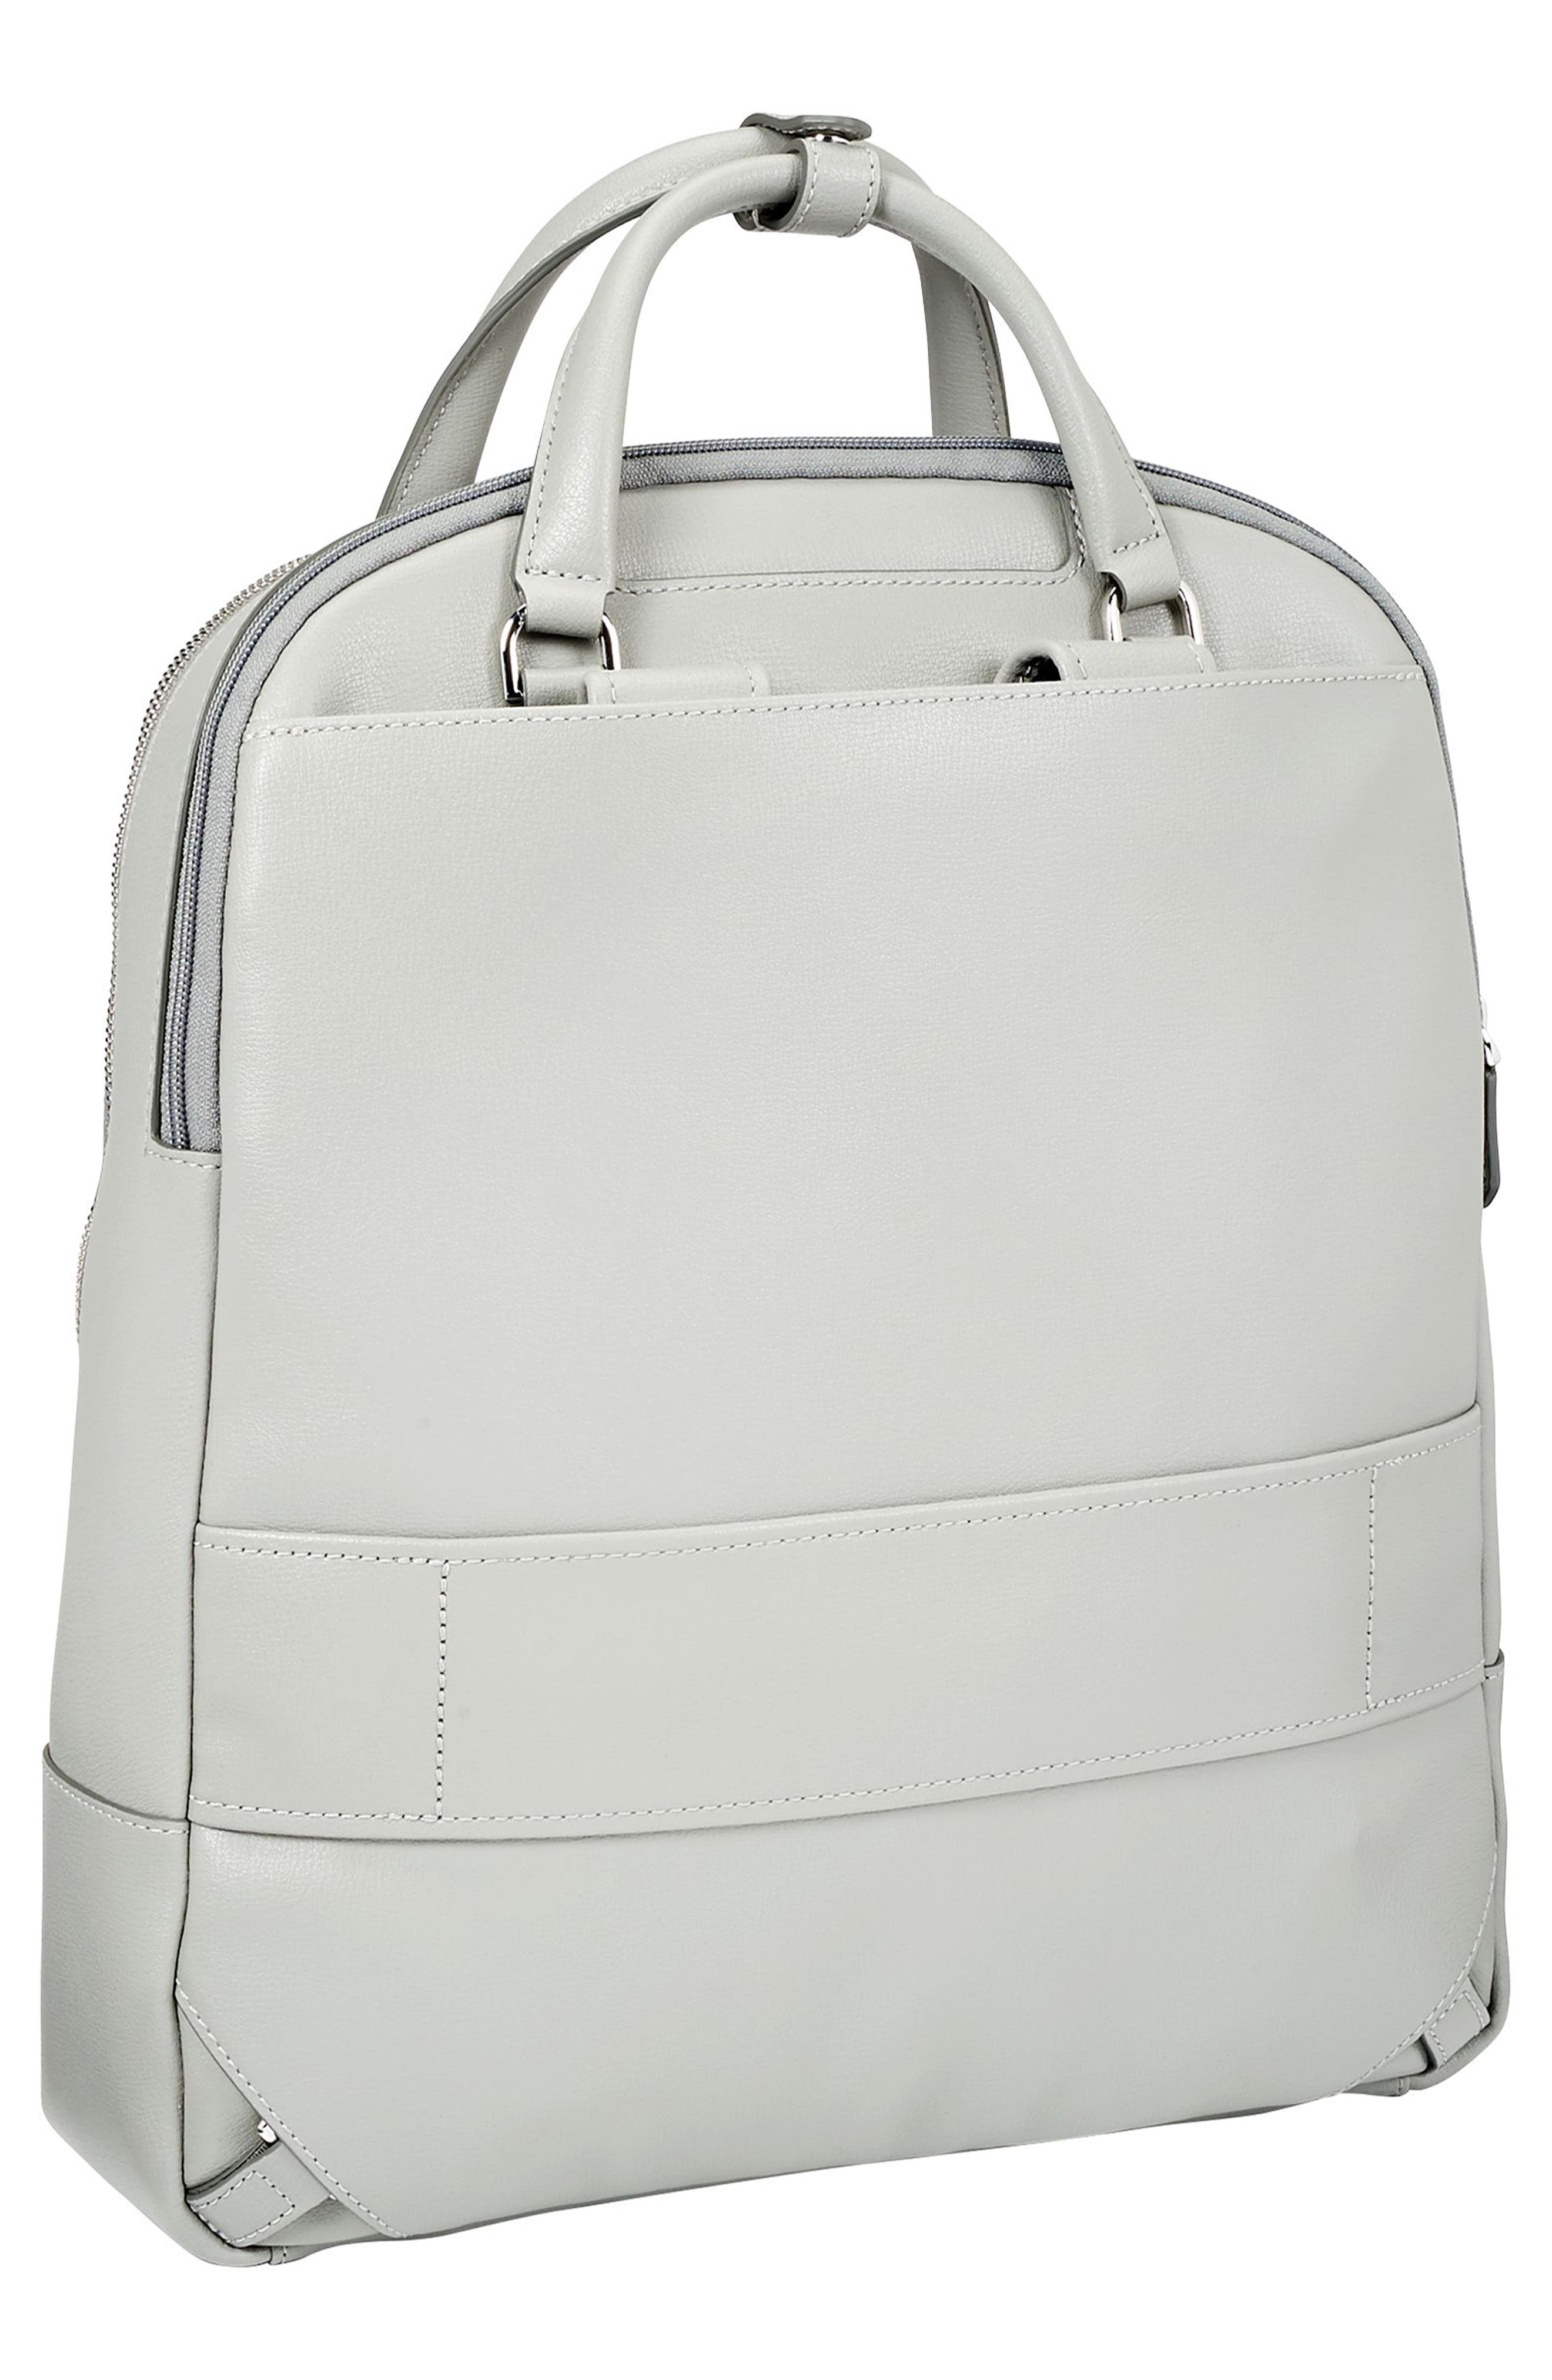 Stanton Orion Leather Backpack,                             Alternate thumbnail 8, color,